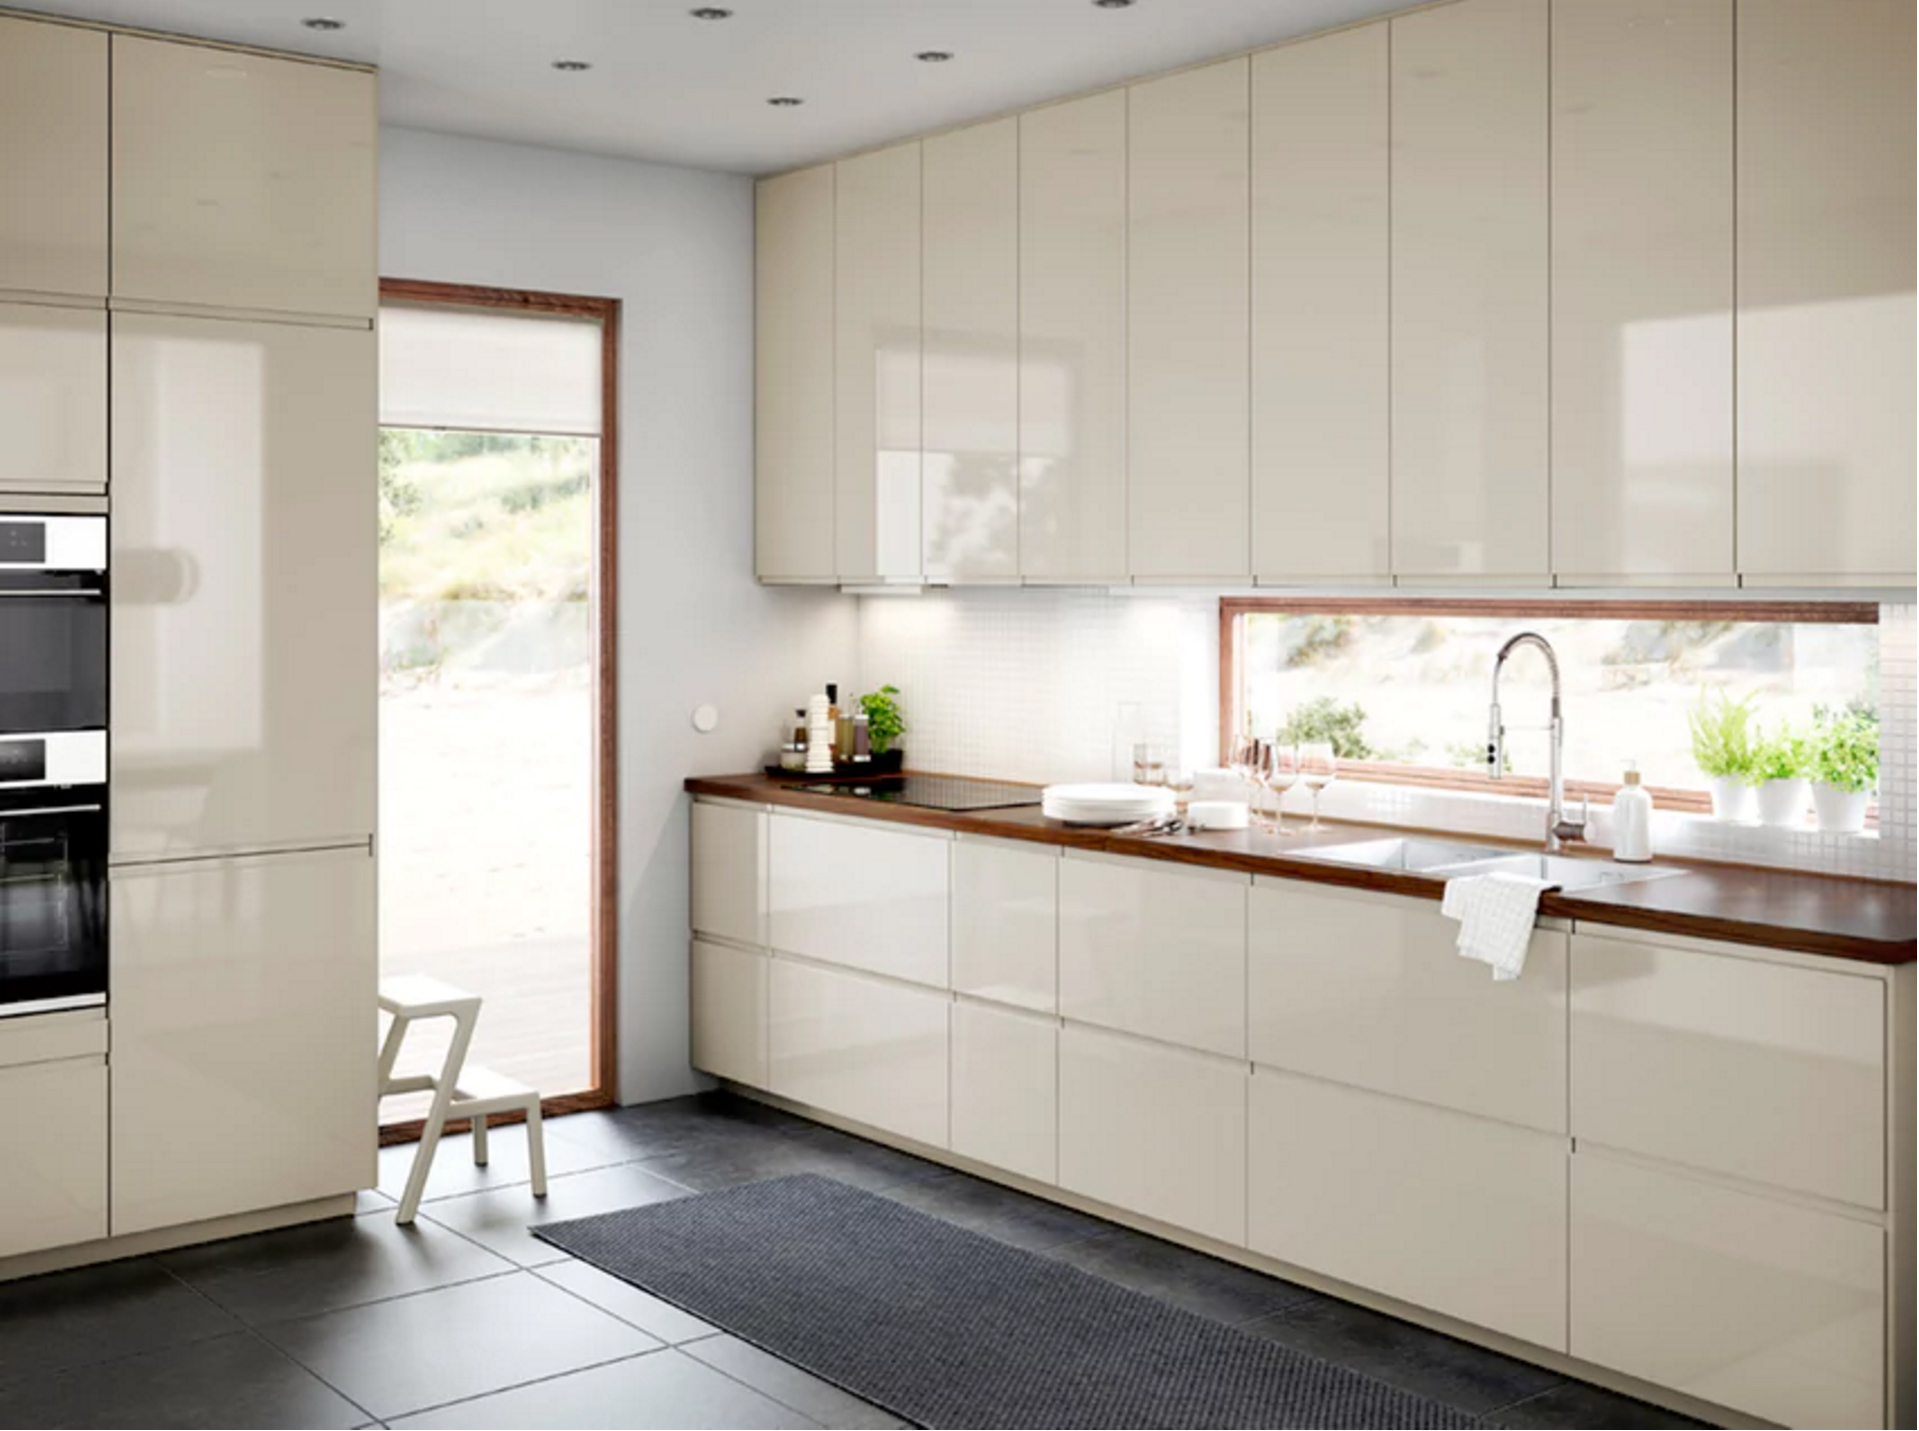 Ikea Voxtorp 3 Things To Know Before You Design Your European Style Kitchen